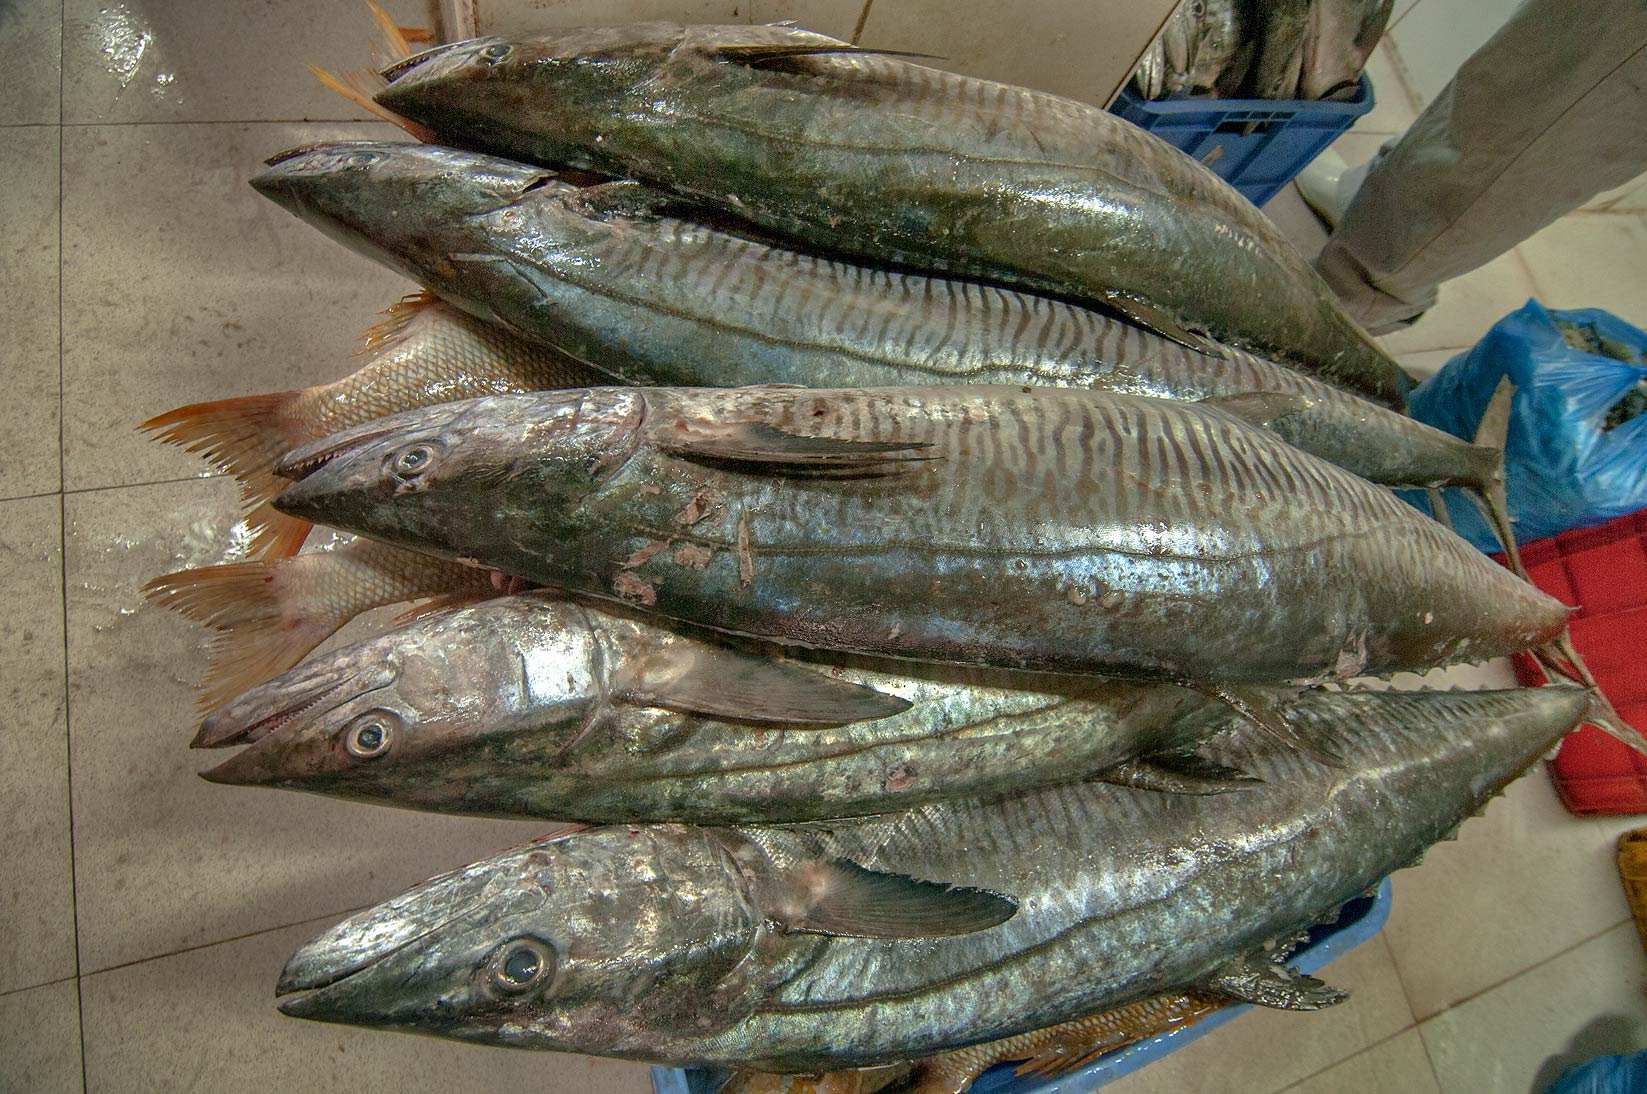 Mackerel in Wholesale Fish Market. Doha, Qatar